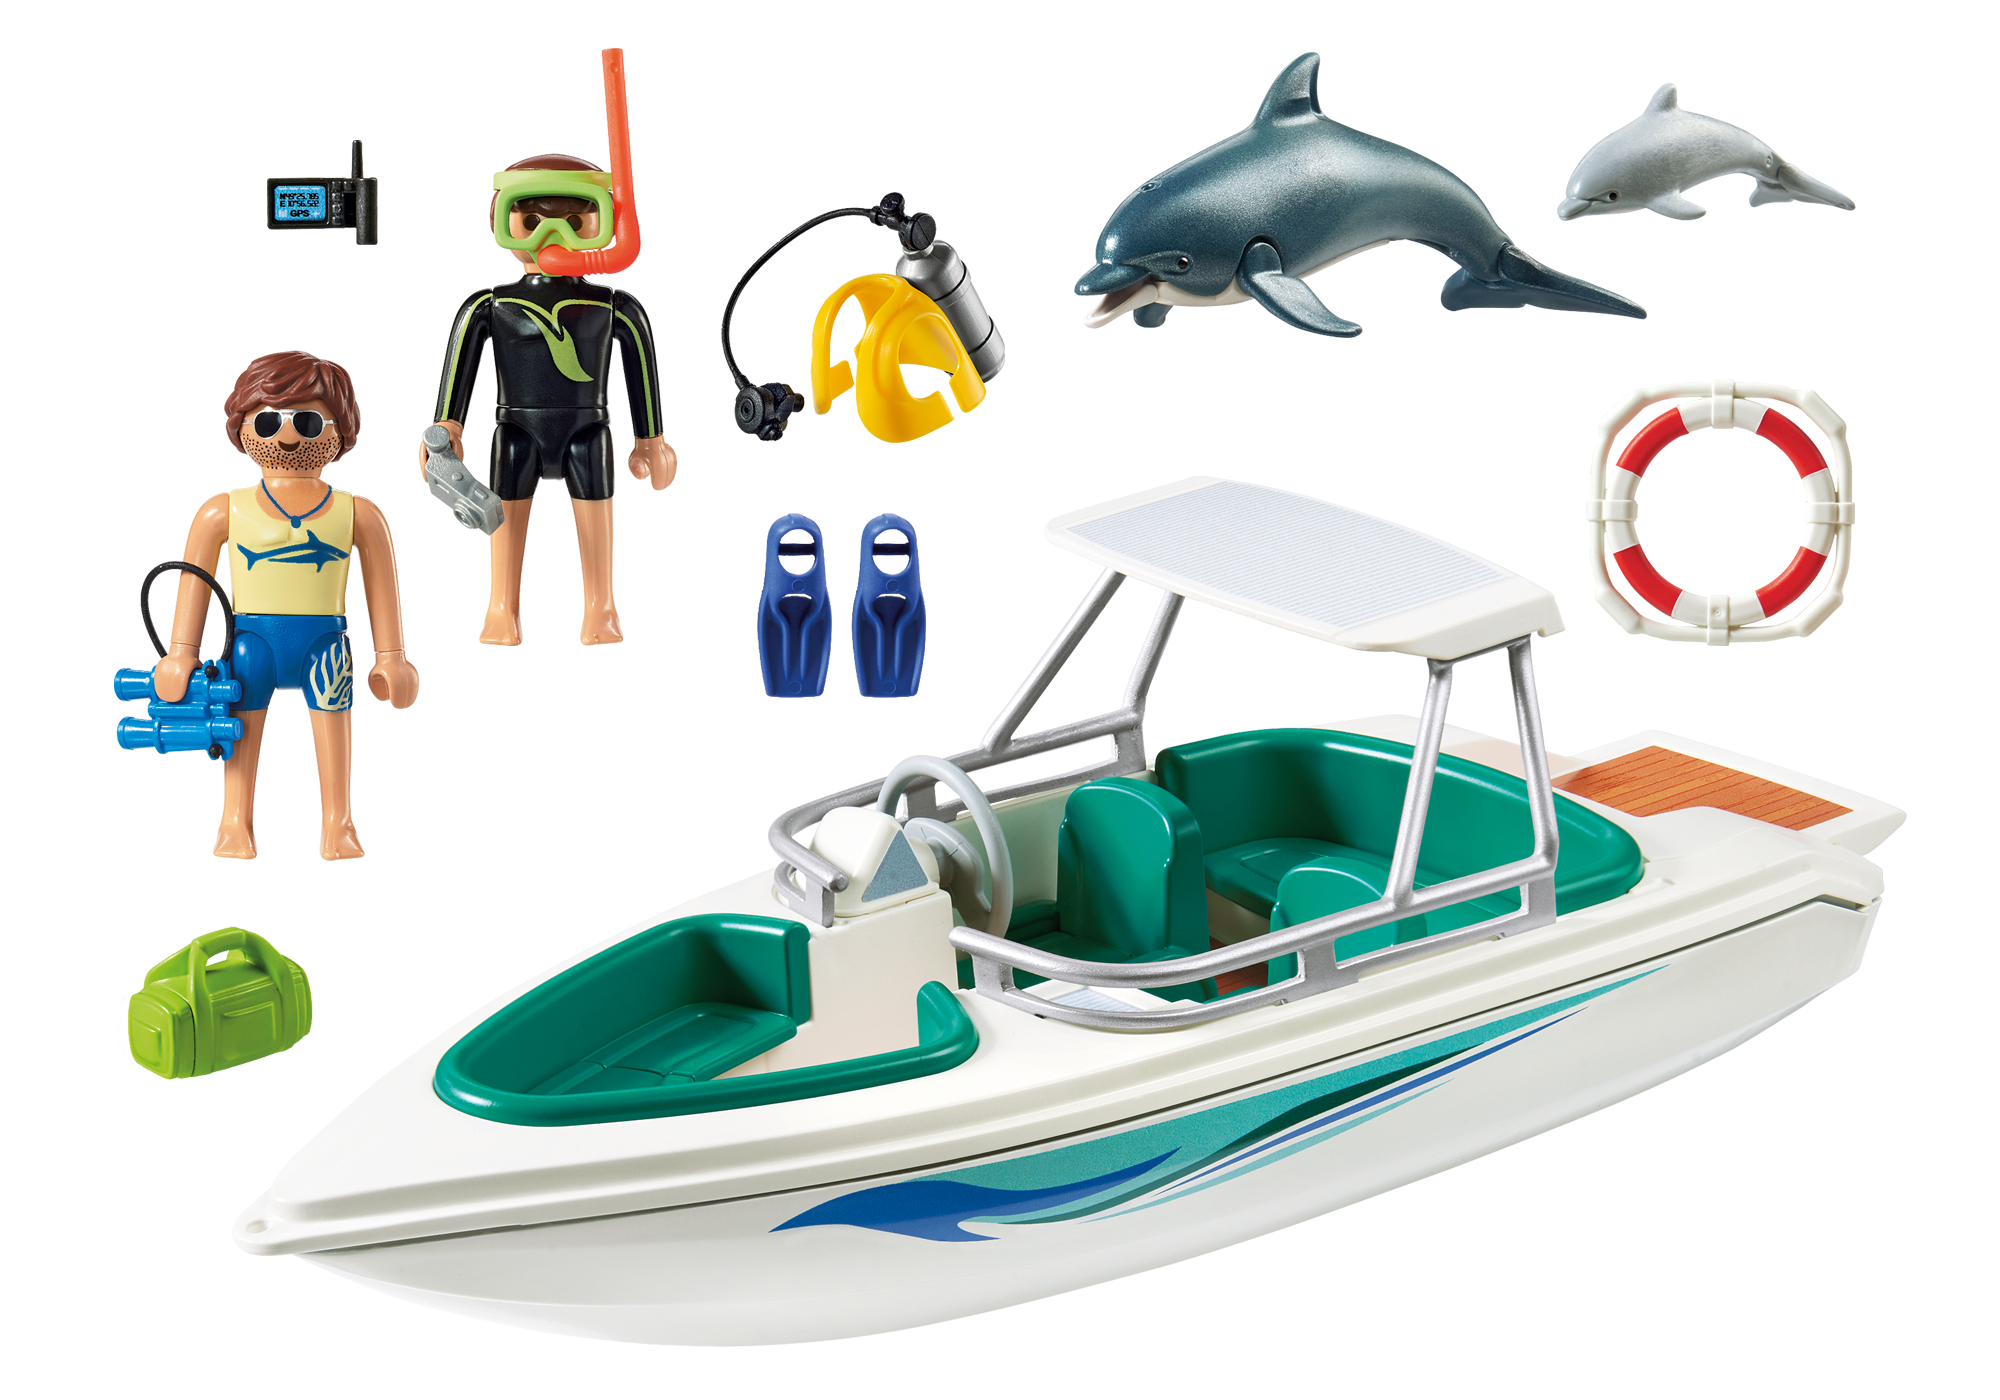 Diving Trip With Speedboat 6981 Playmobil 174 United Kingdom